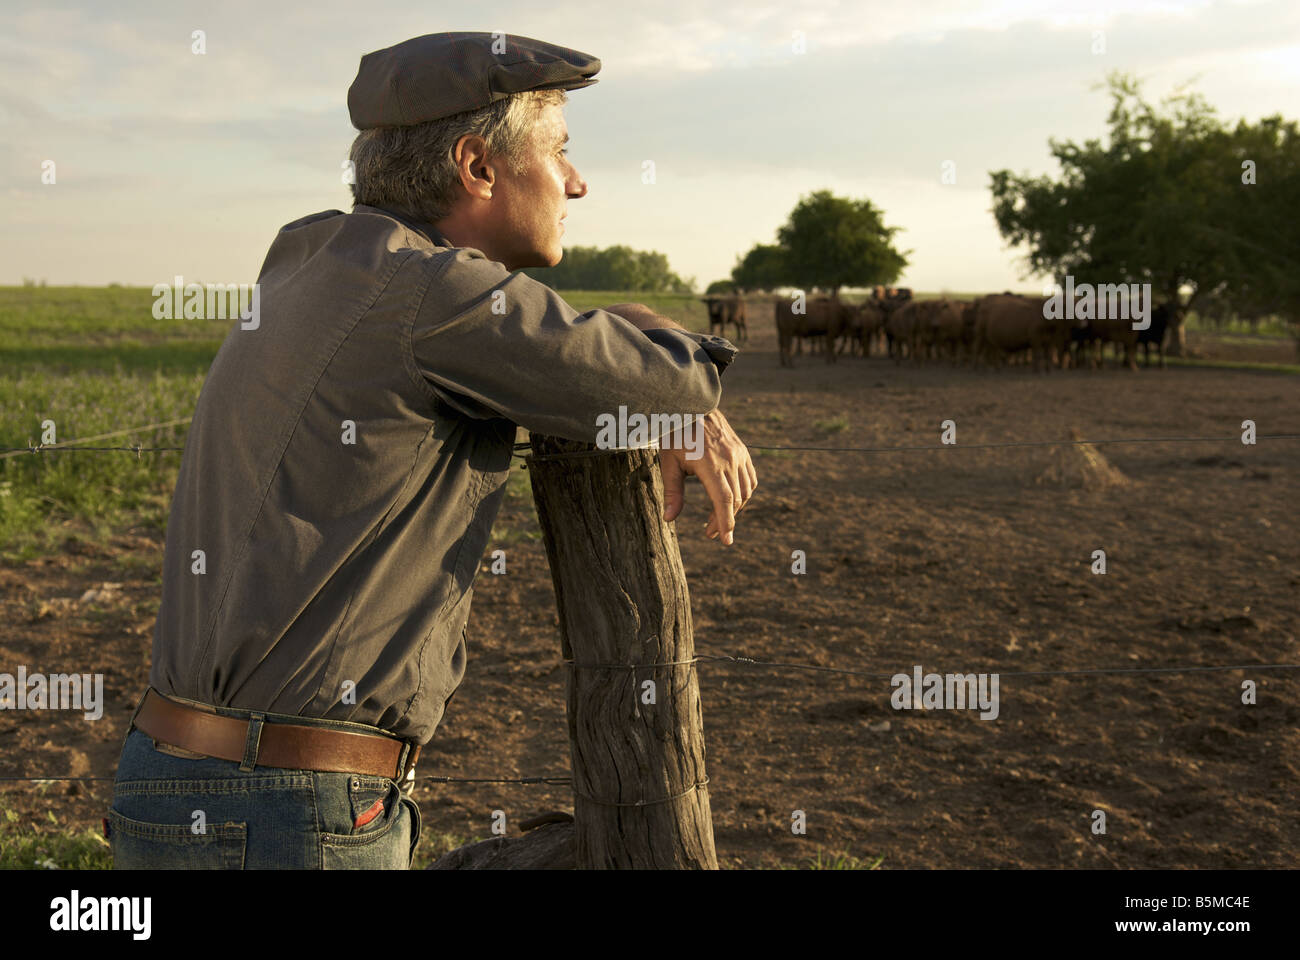 A man on a ranch leaning on a fence post Stock Photo